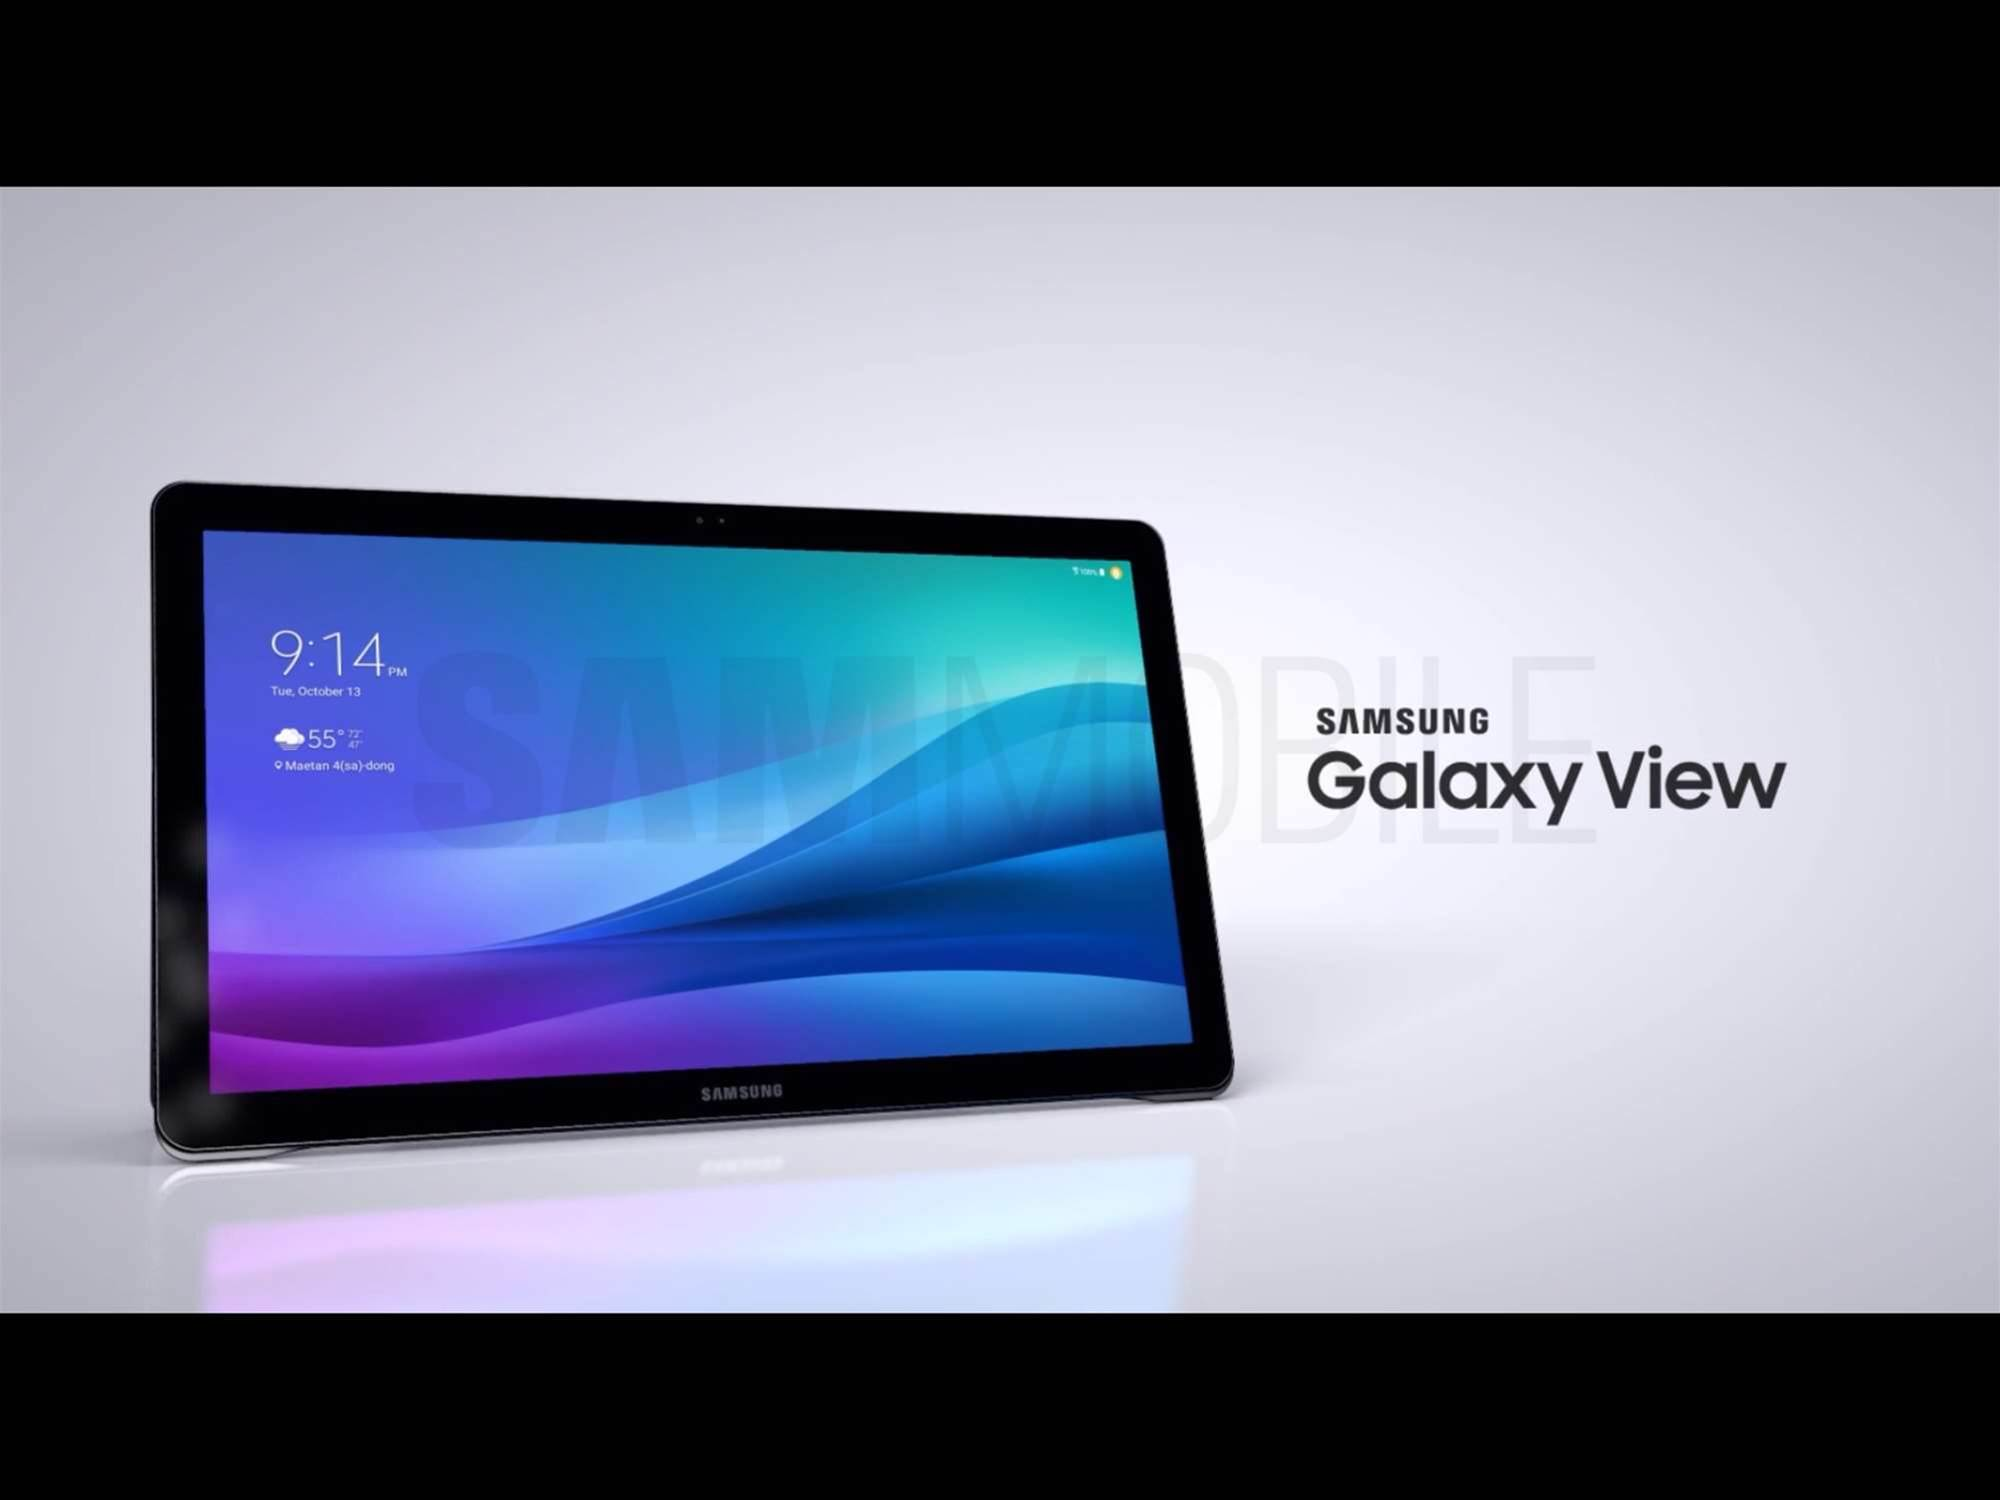 Samsung's Galaxy View tablet sells for $US599